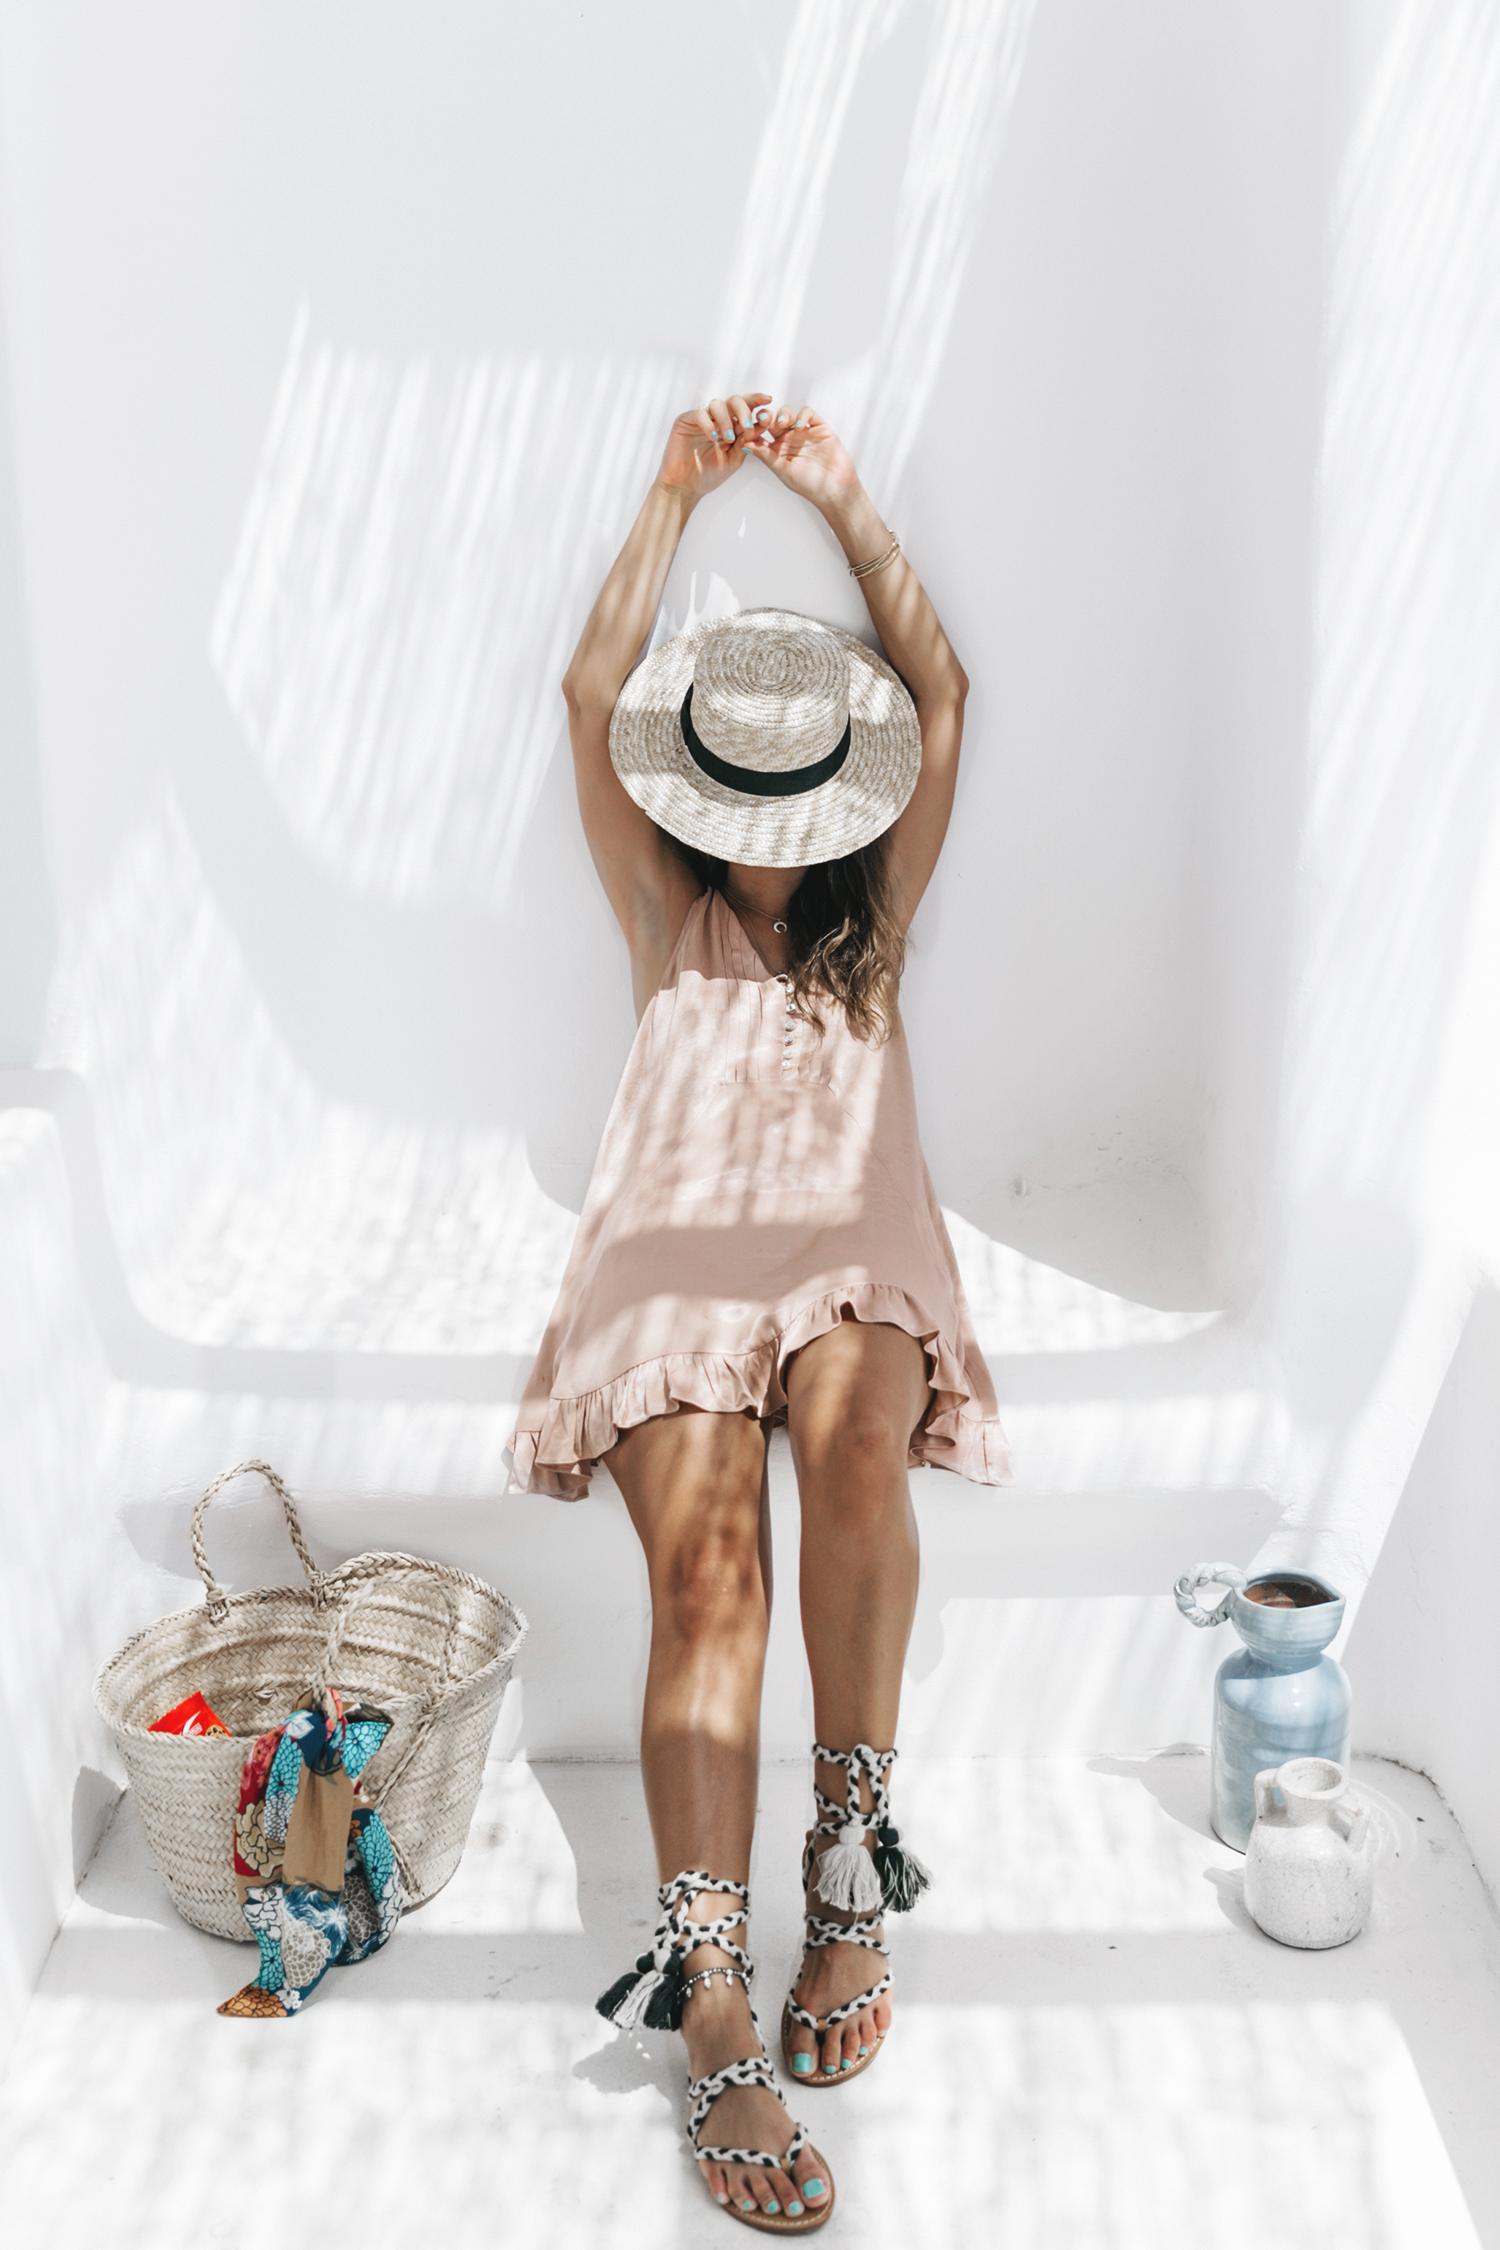 Soludos-Soludos_Escapes-Light_Pink_Dress-Knotted_Sandals-Mykonos-Greece-Collage_Vintage-Summer_Outfit-Street_Style-10